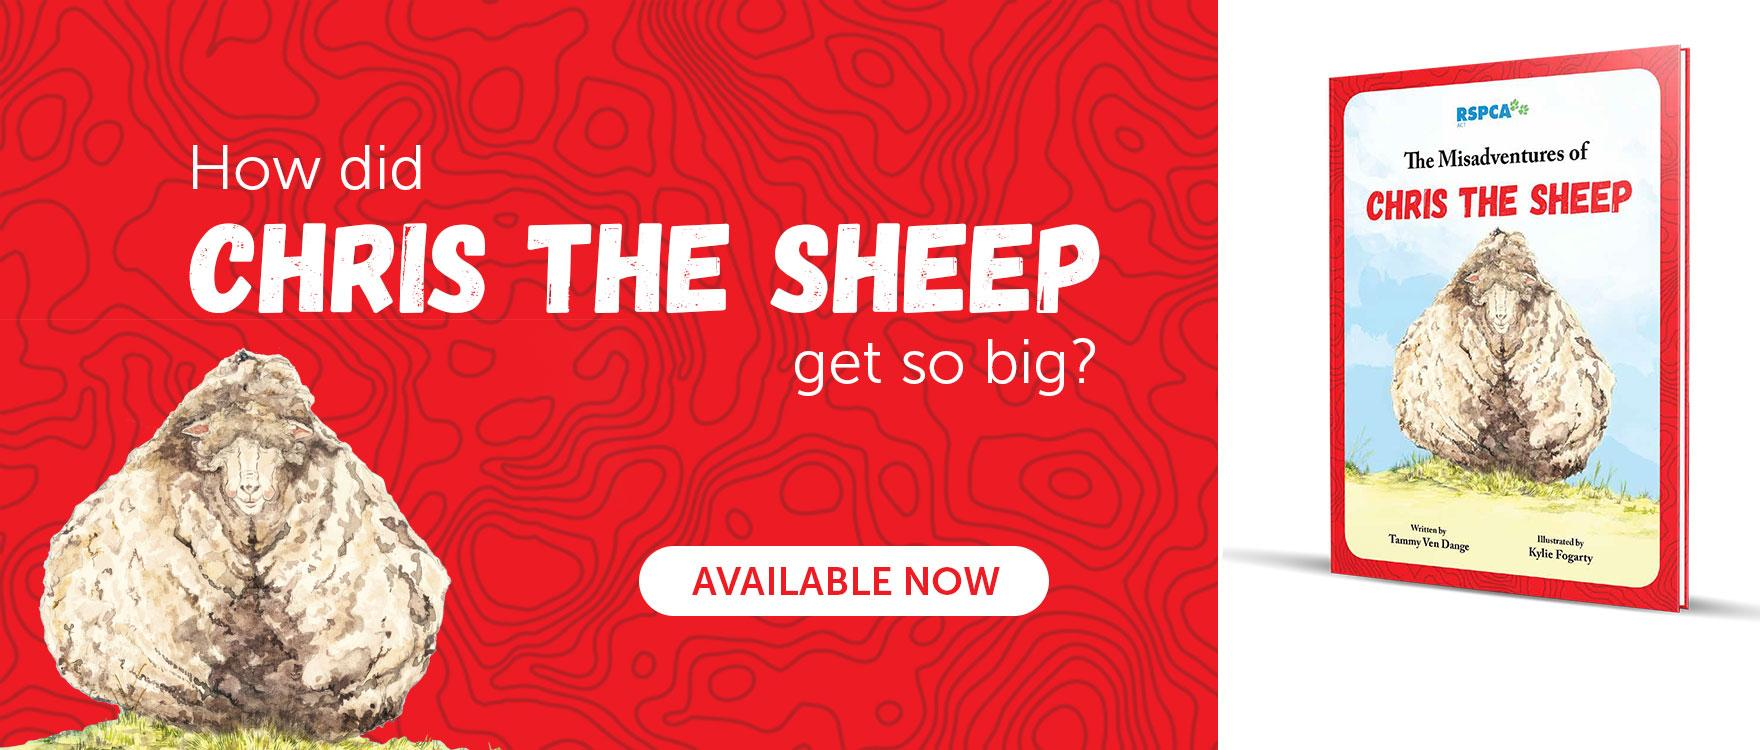 The Misadventures of Chris the Sheep is available now.